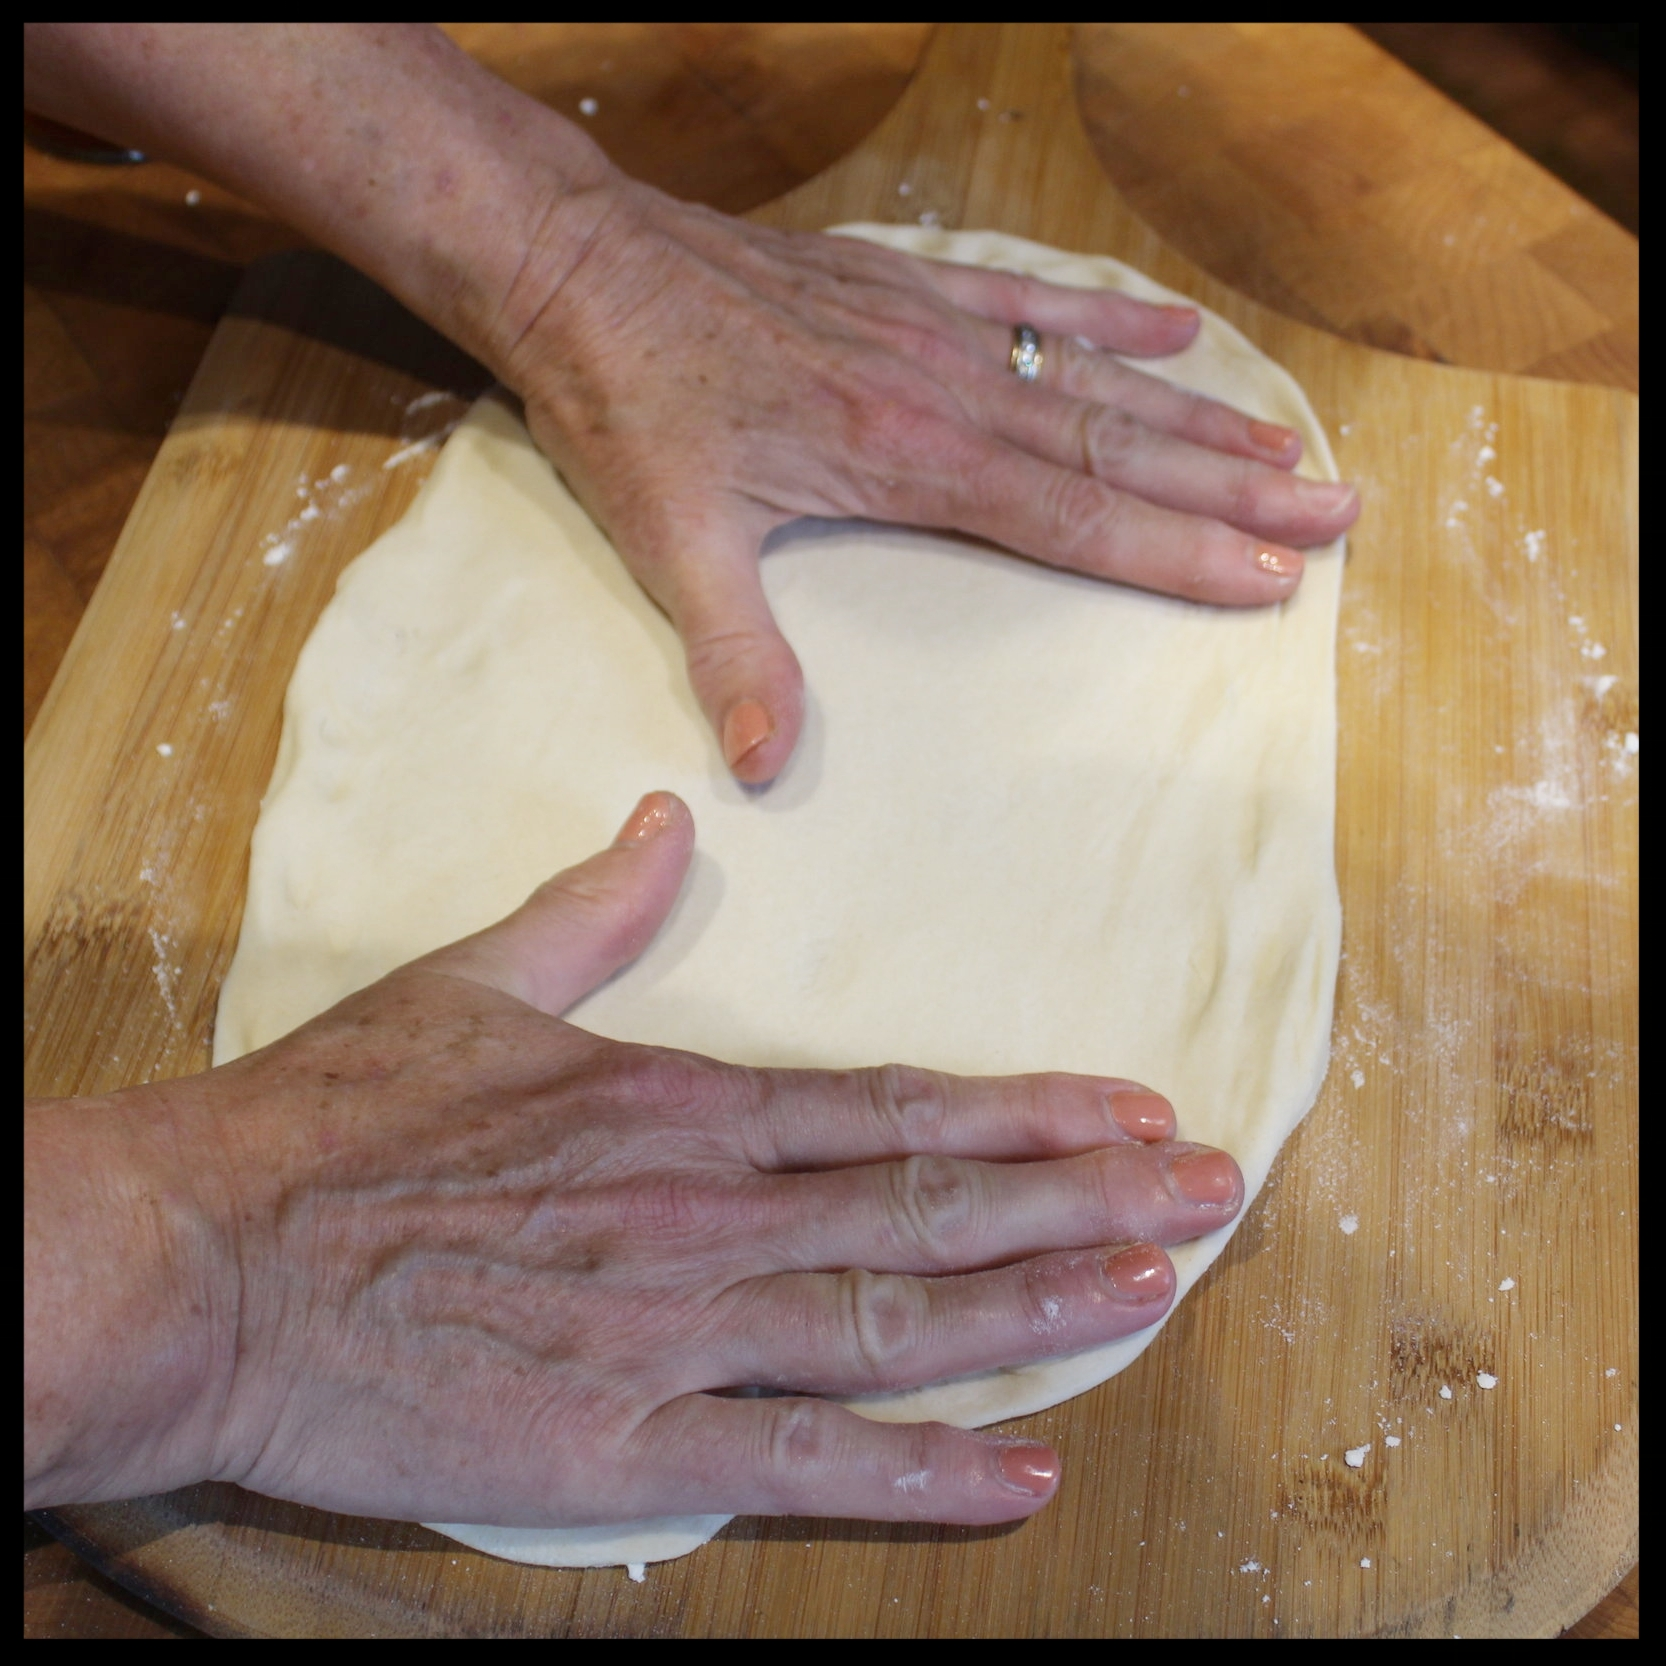 9. Flour your surface and now with palms flat, urge the dough out by moving your hands apart. Rotate the dough and do this again until you have a nice round.